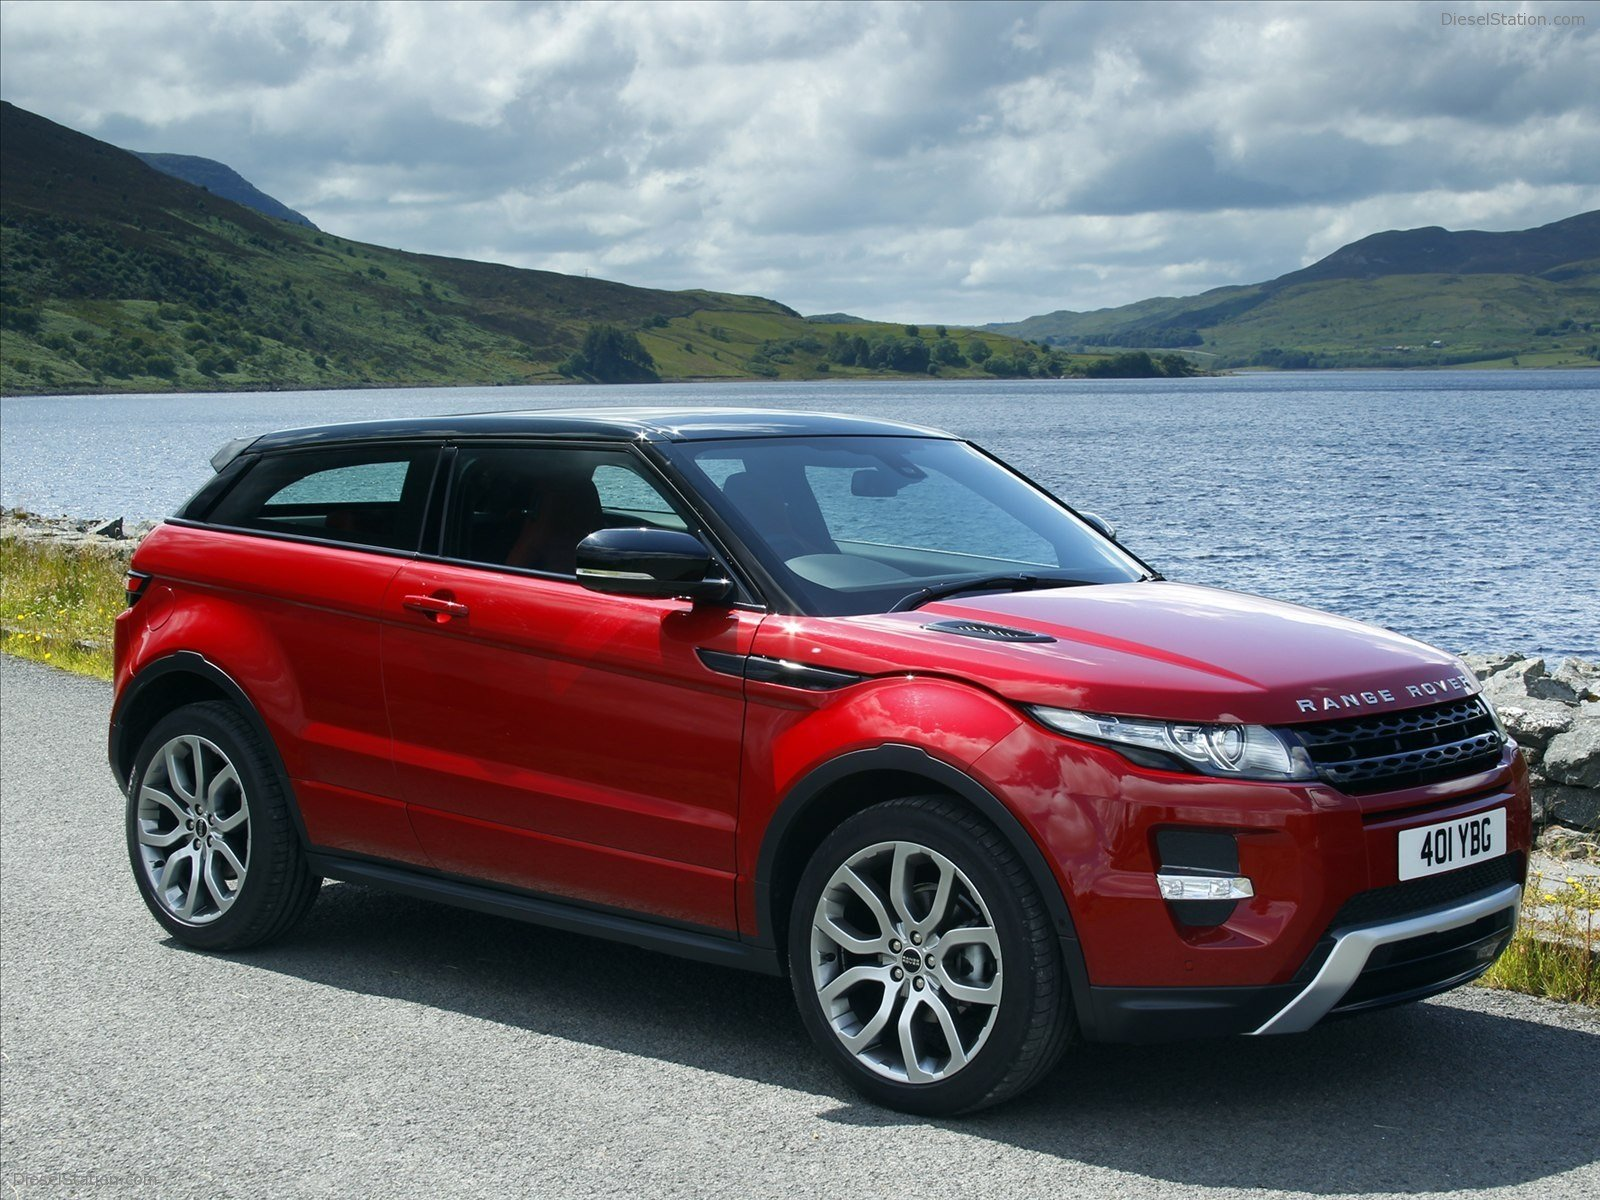 New Range Rover Evoque 2012 Exotic Car Wallpaper 27 Of 63 On This Month